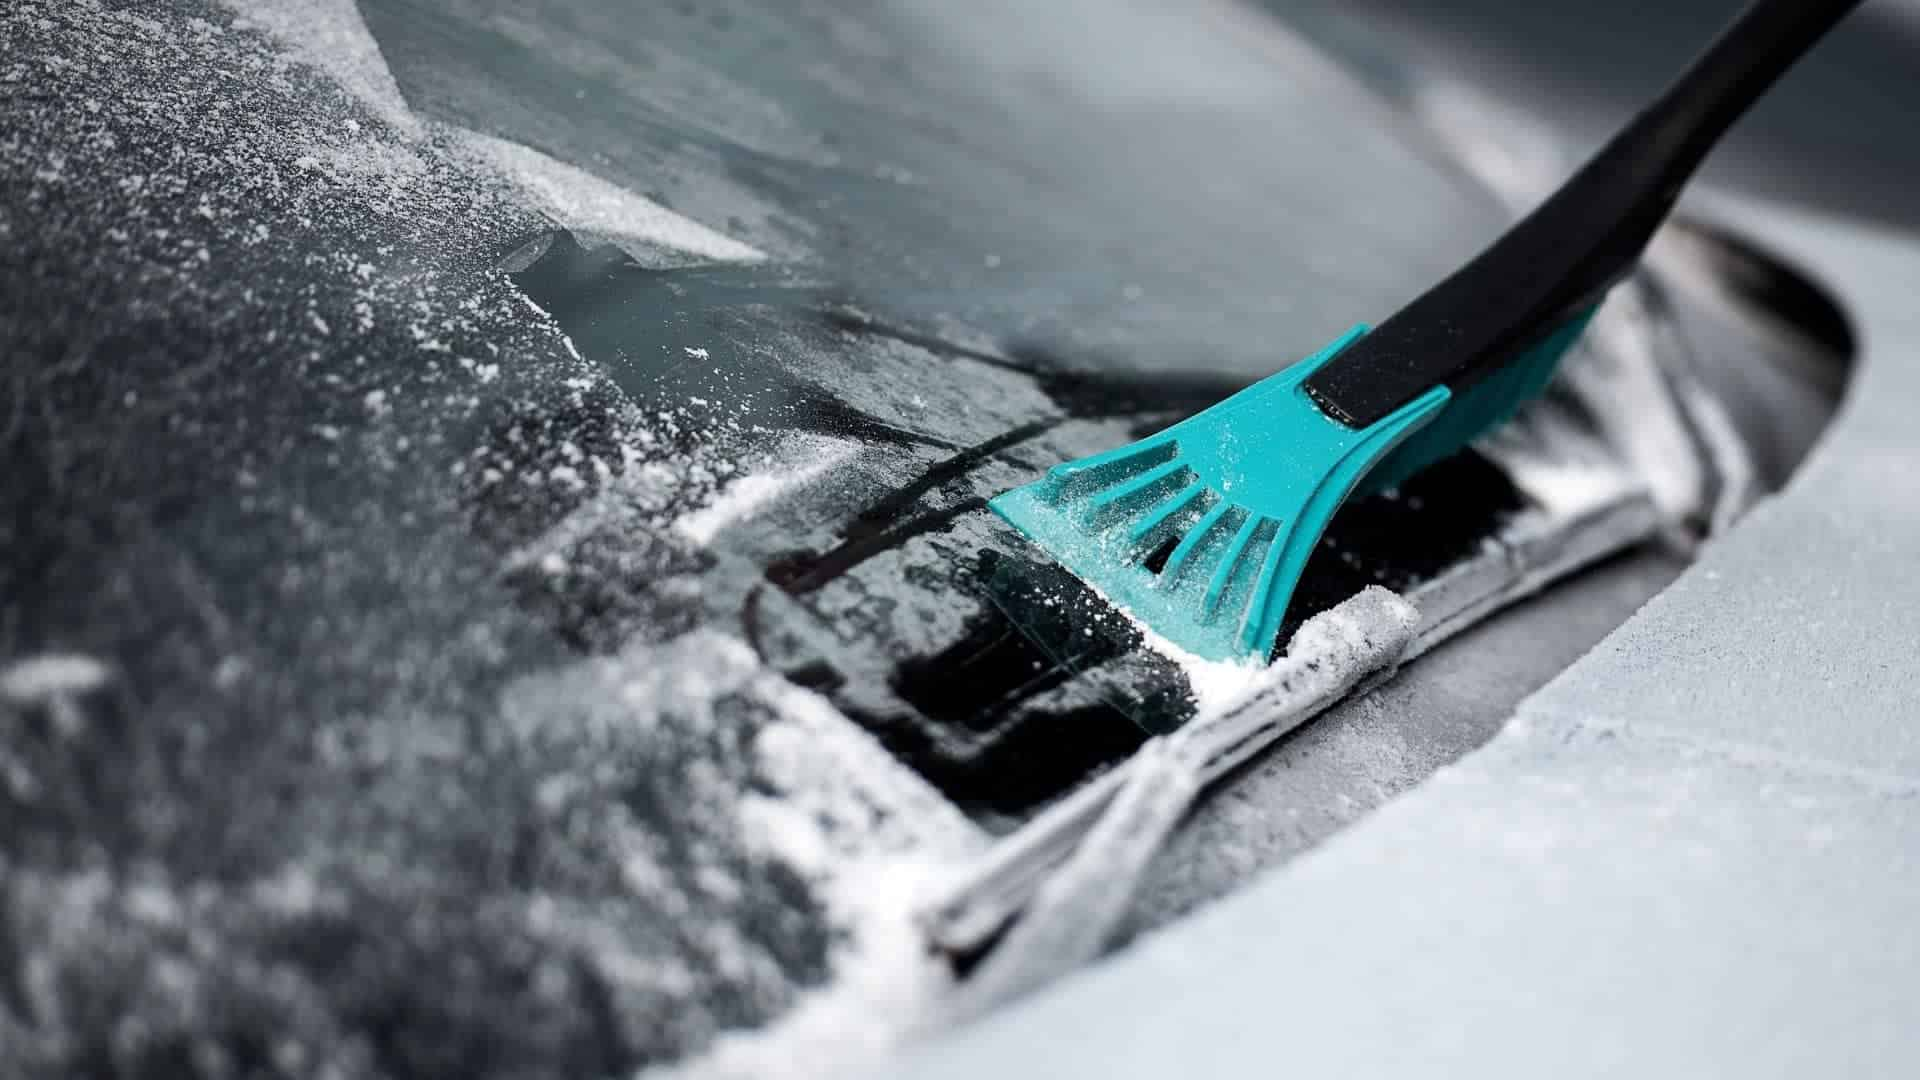 How To Remove Paint From Windshield